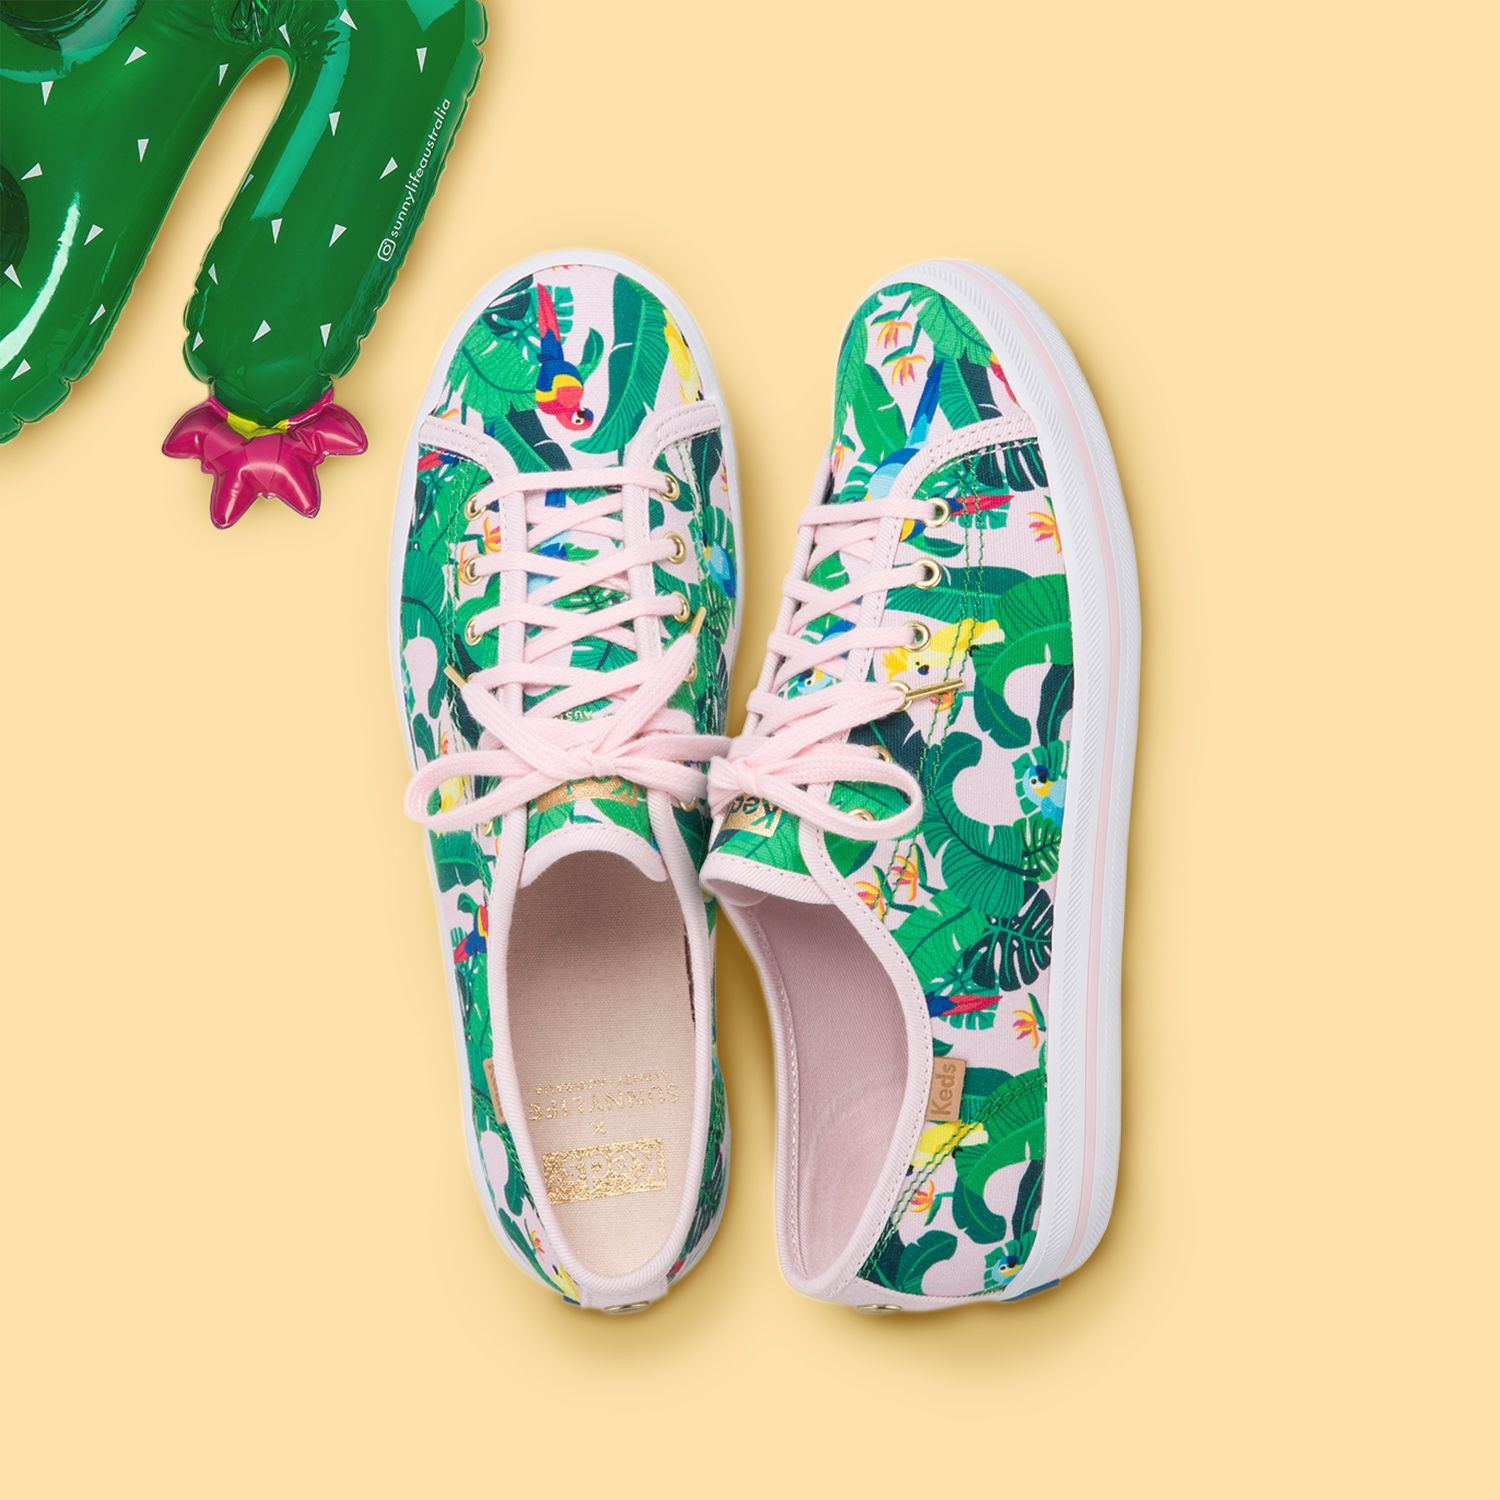 Keds x SunnyLife Collaboration Features Chic, Vibrant Footwear Designs For Summer